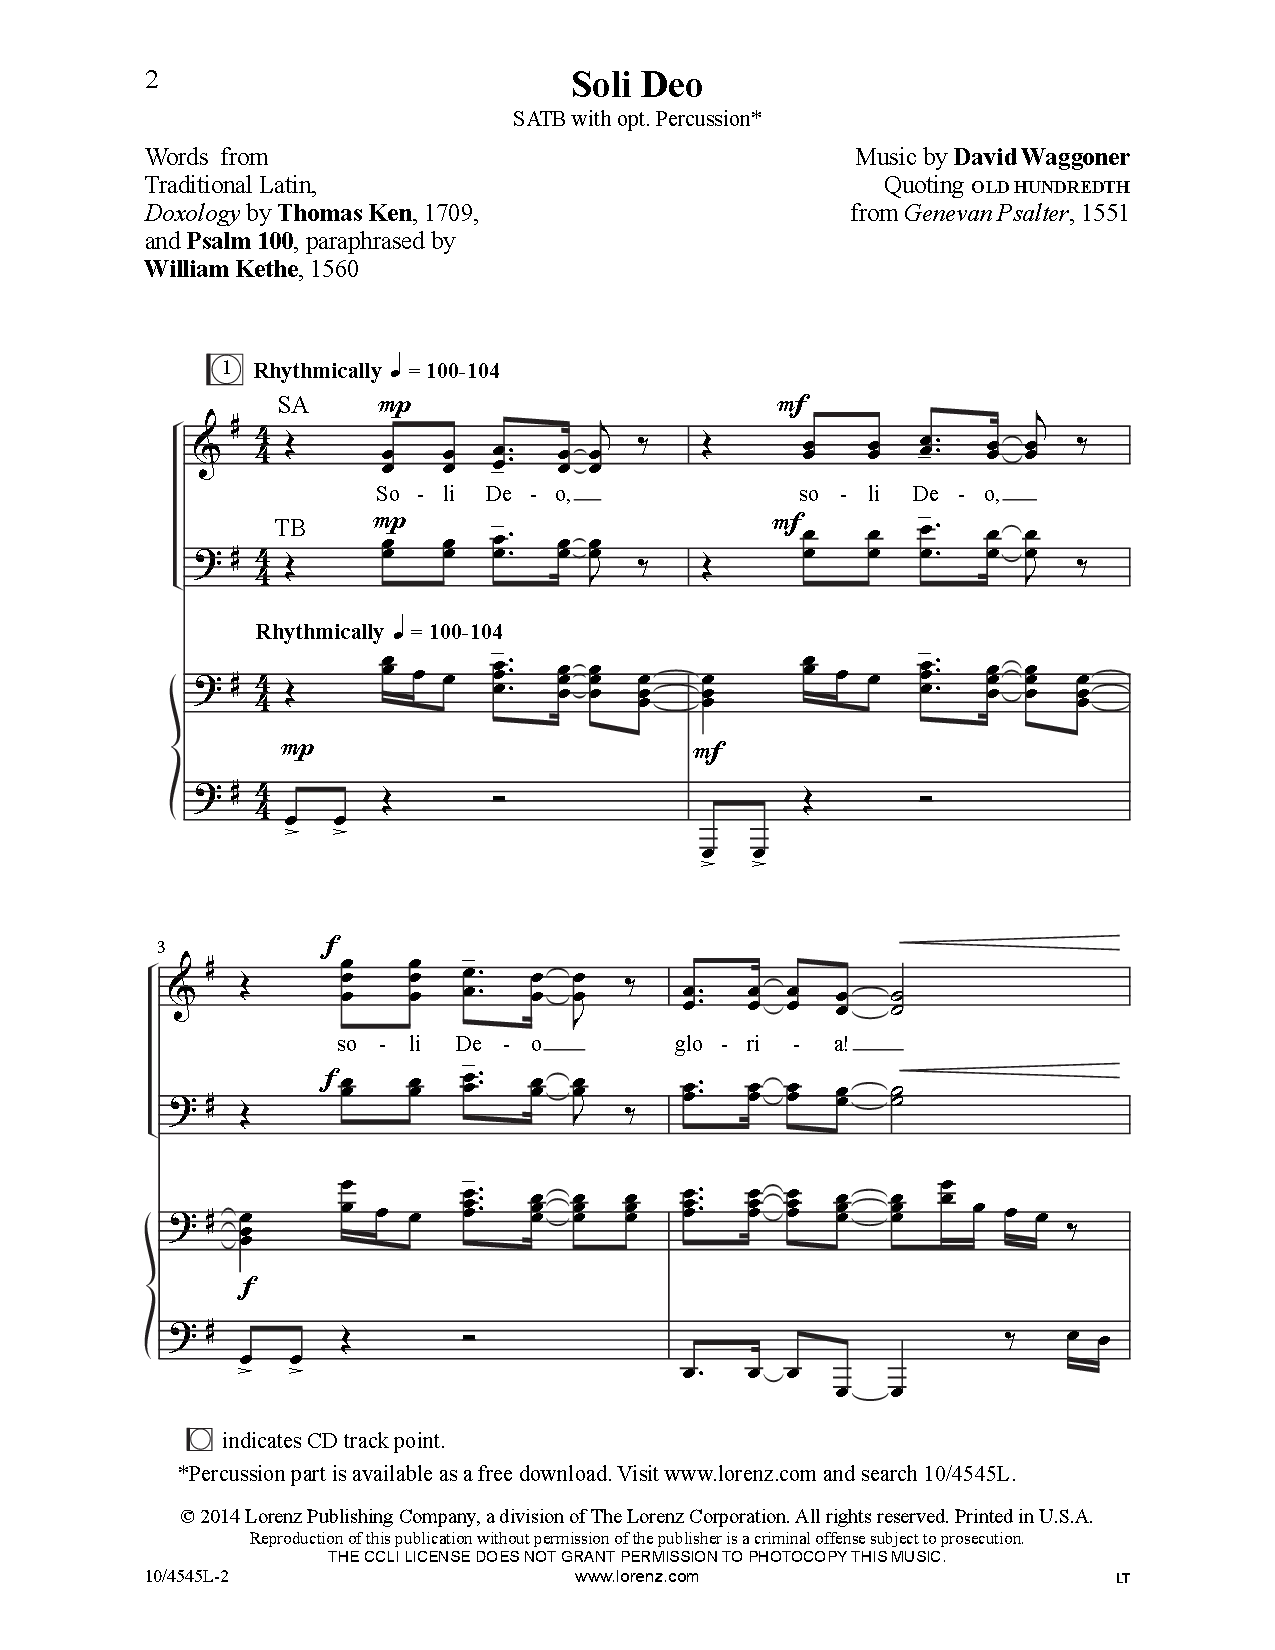 Soli Deo (SATB ) by David Waggoner| J W  Pepper Sheet Music